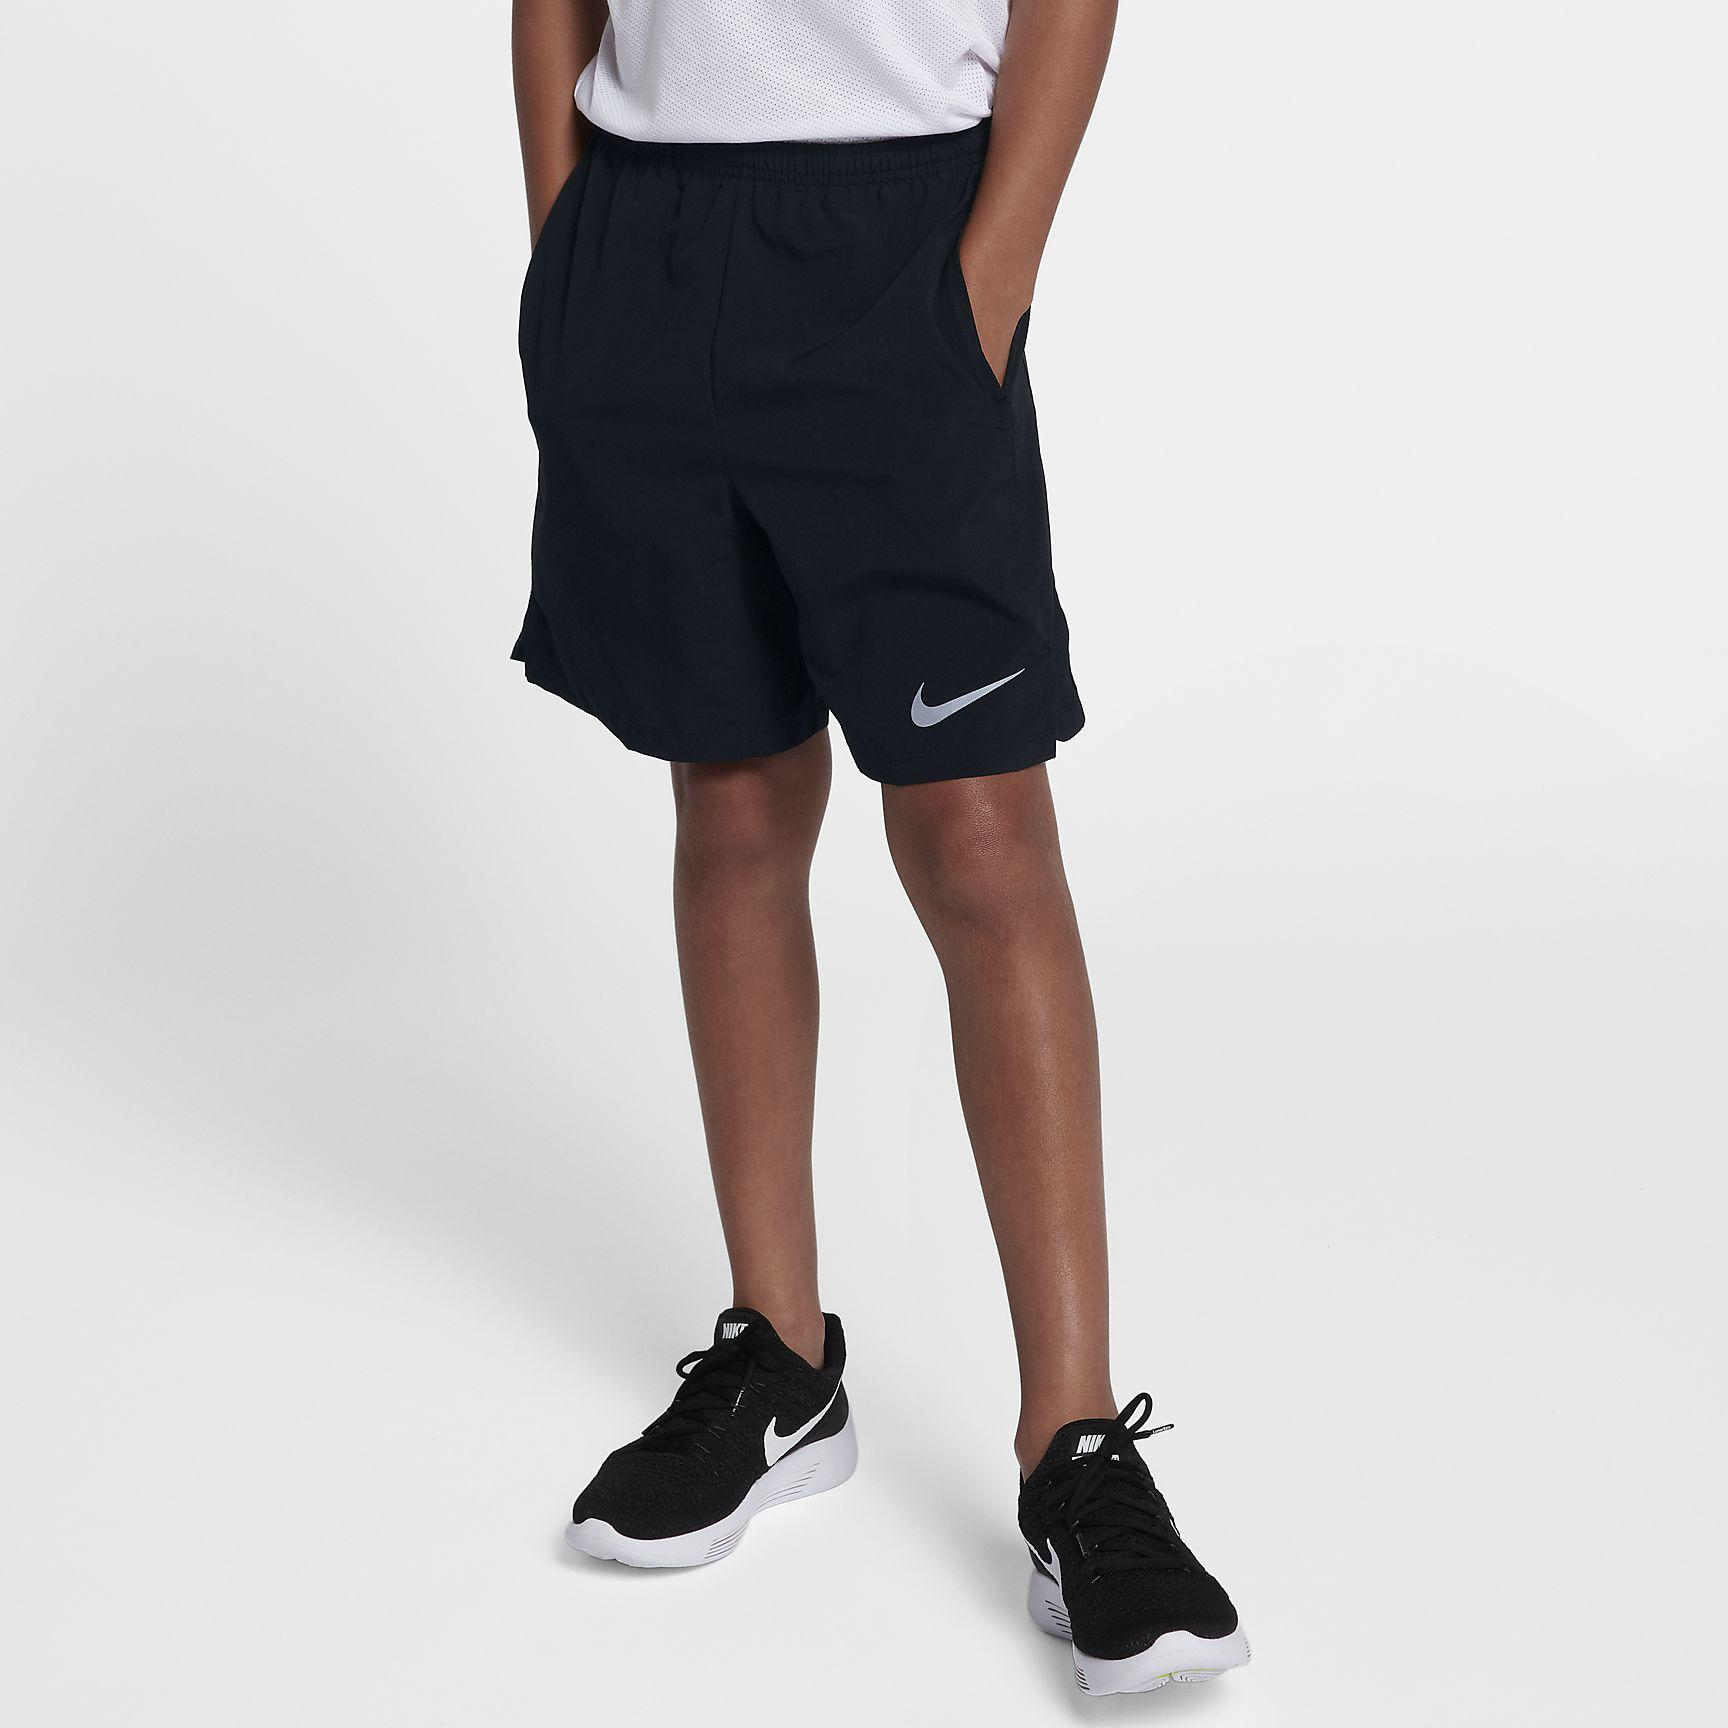 Nike Boys Flex Shorts - Black - Tennisnuts.com